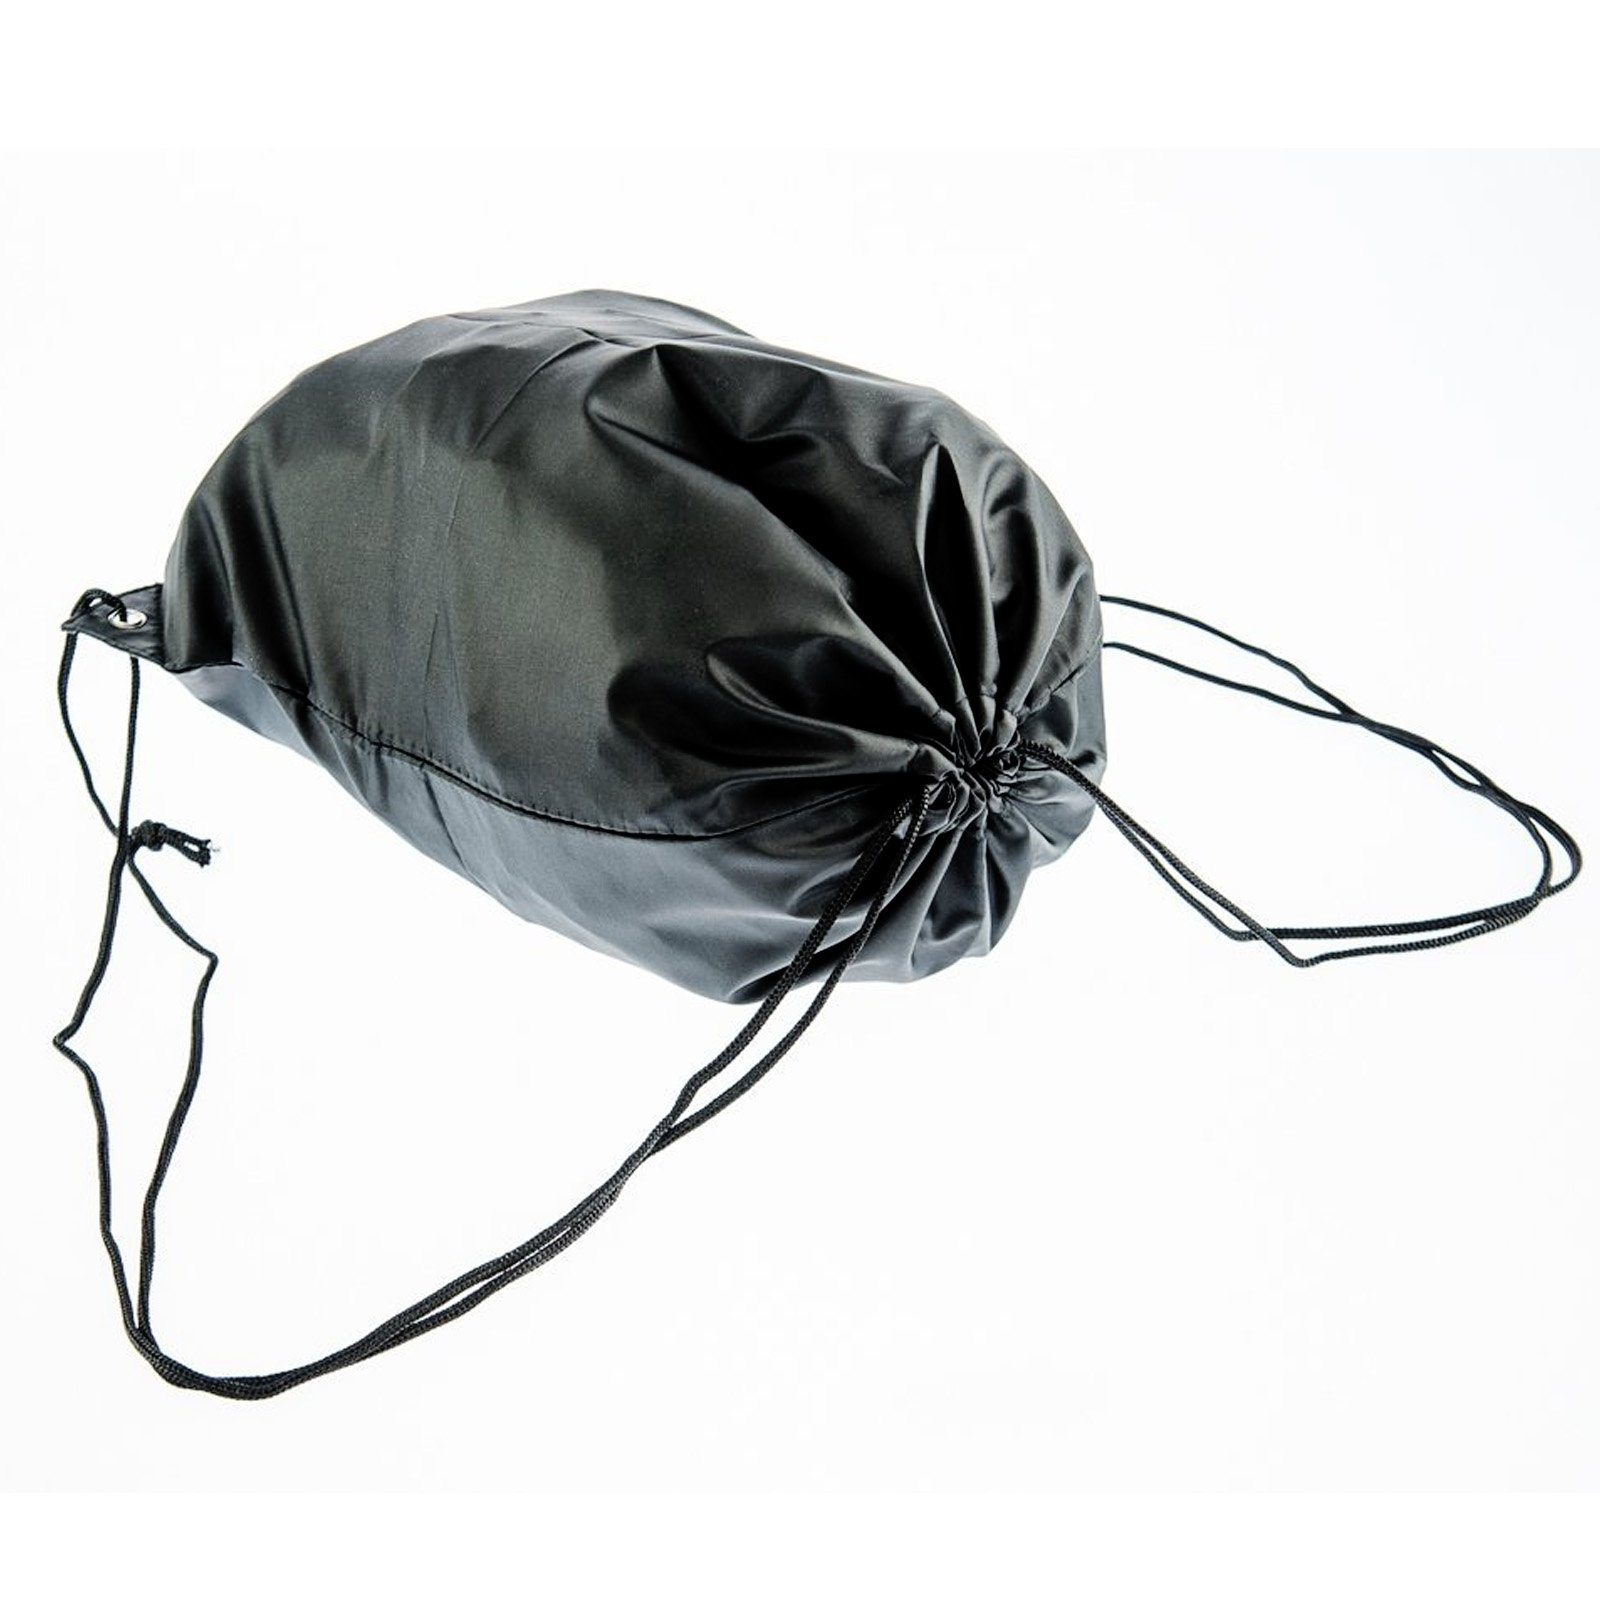 ASR Outdoor Black Drawstring Security Strings Bag with Stopper